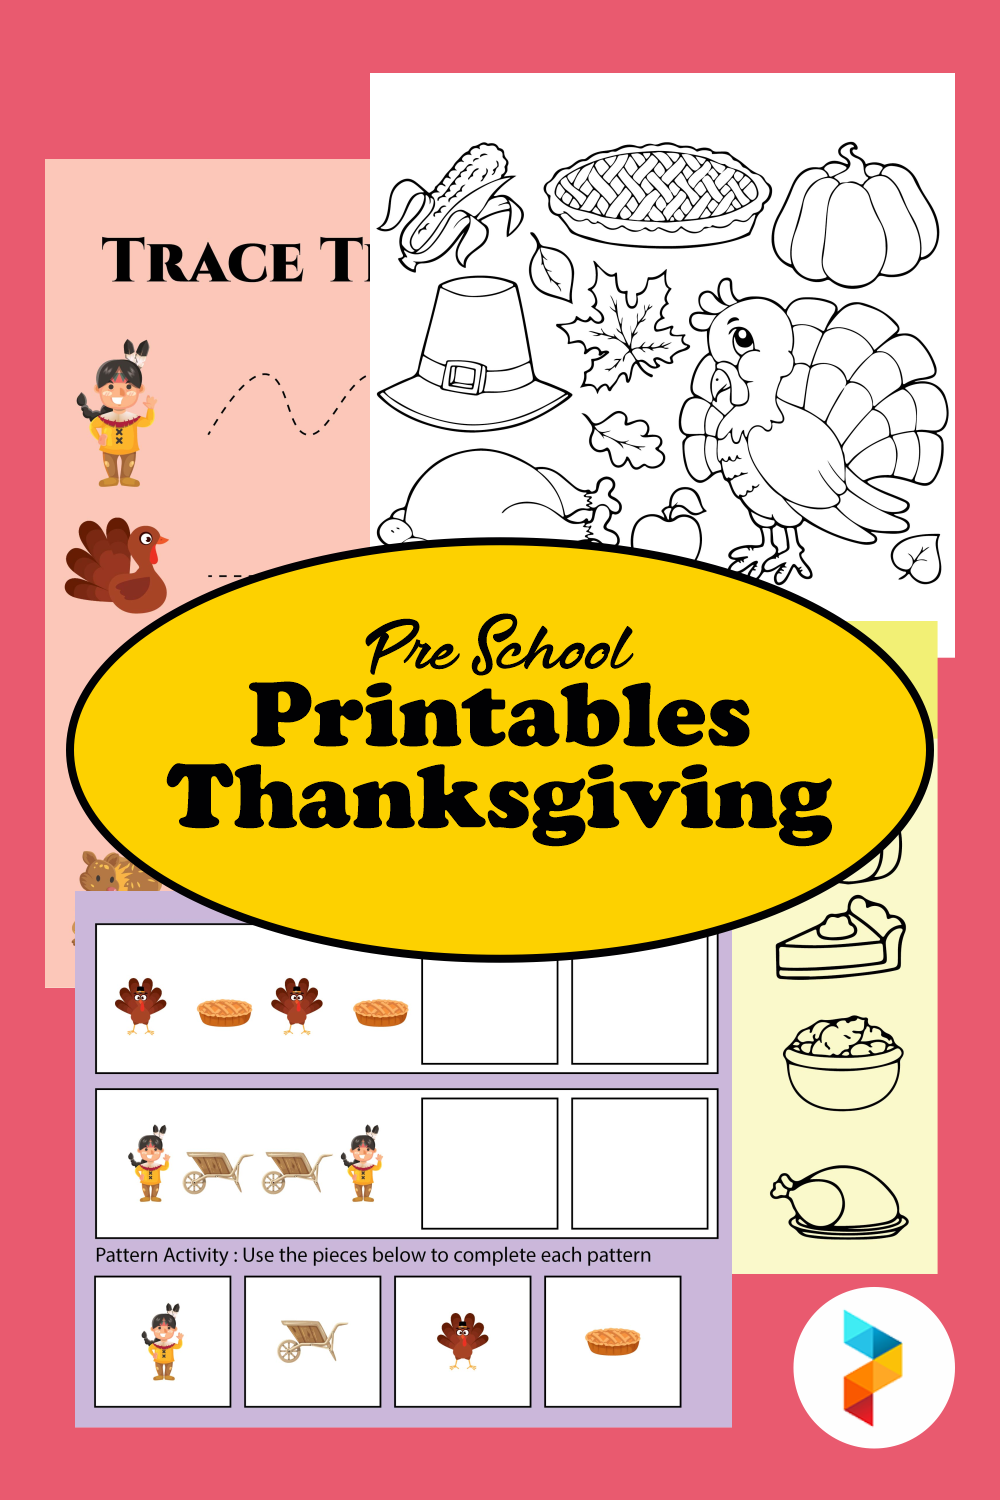 Pre School Printables Thanksgiving